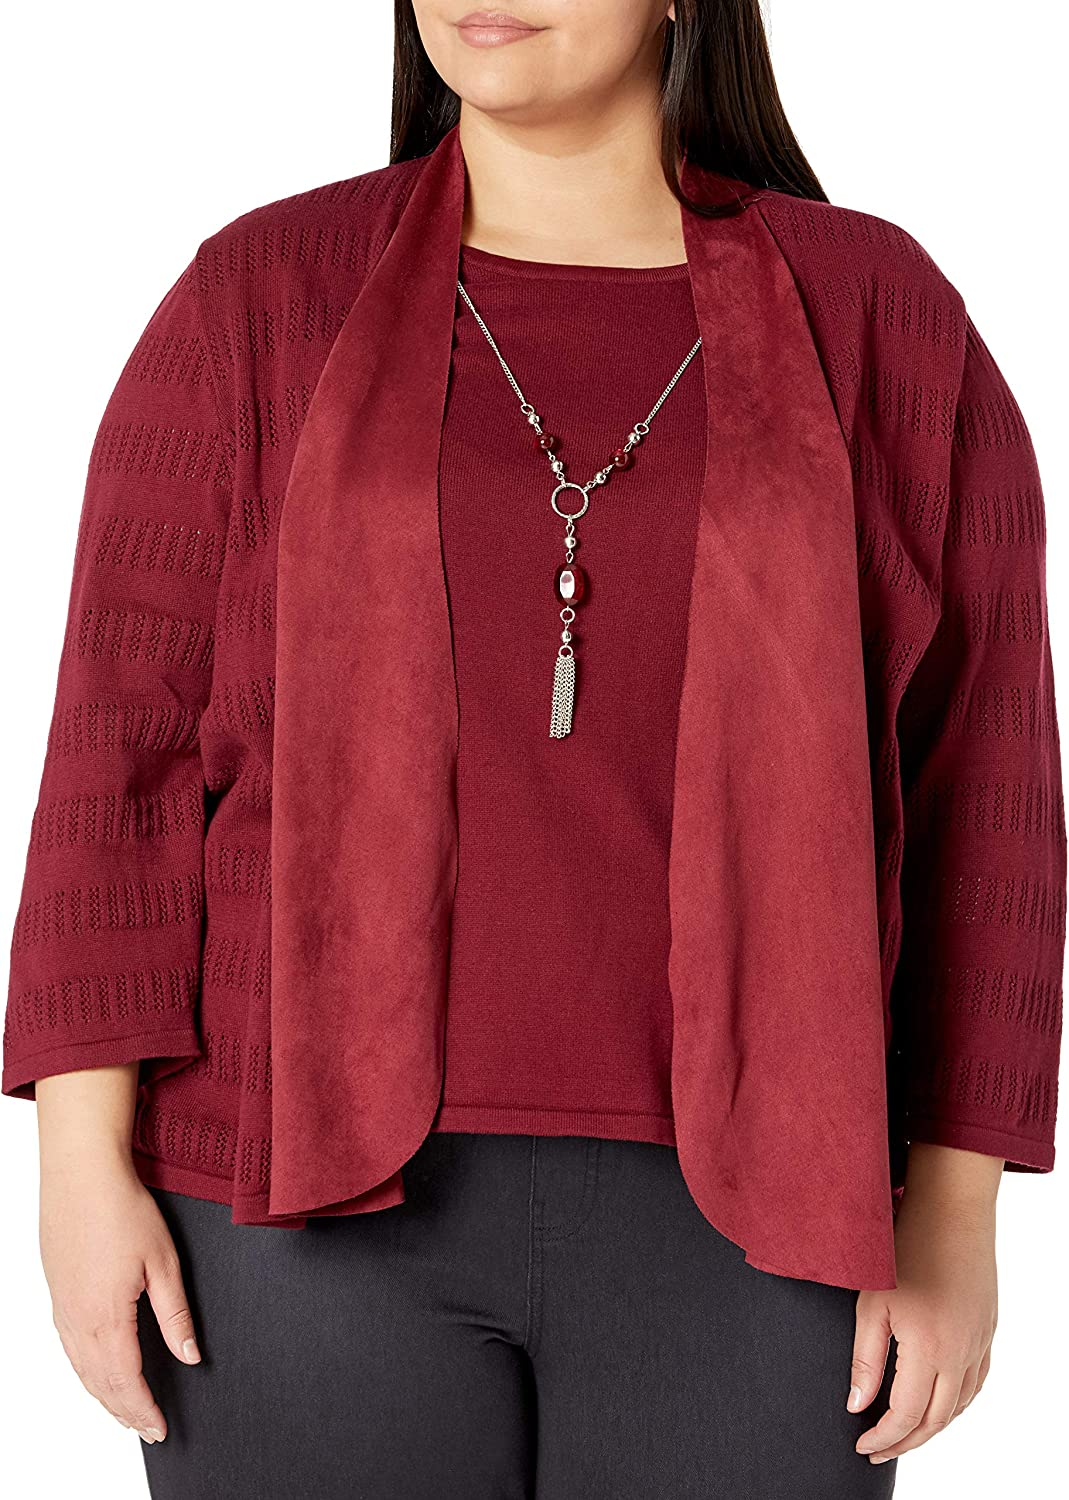 Alfred Dunner Women's Plus Size Beaded Diamond Layered Sweater with Woven Details